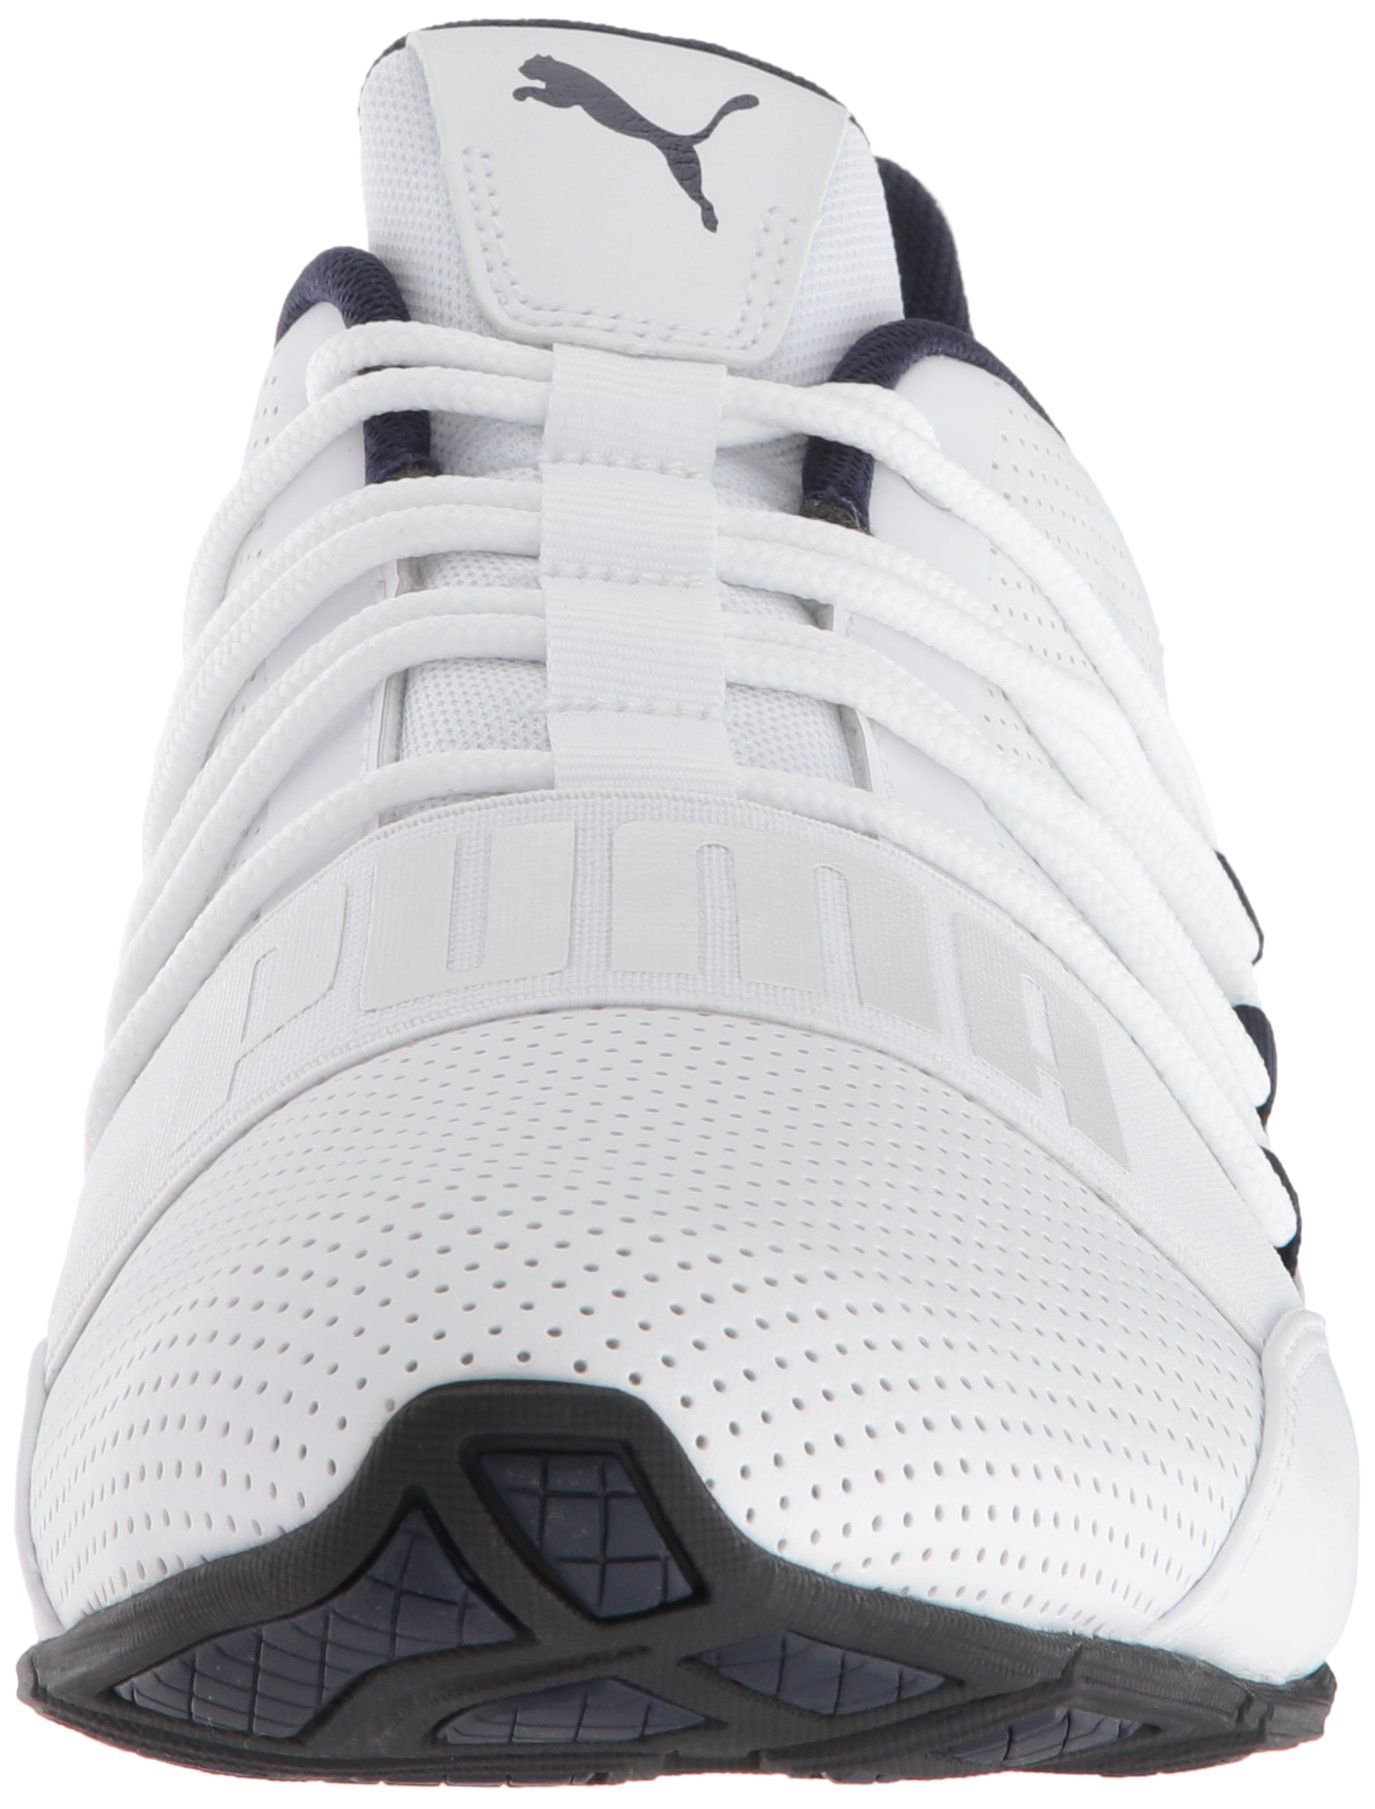 PUMA Men's Cell Regulate SL Sneaker, White Black-Peacoat Silver, 7 M US by PUMA (Image #4)